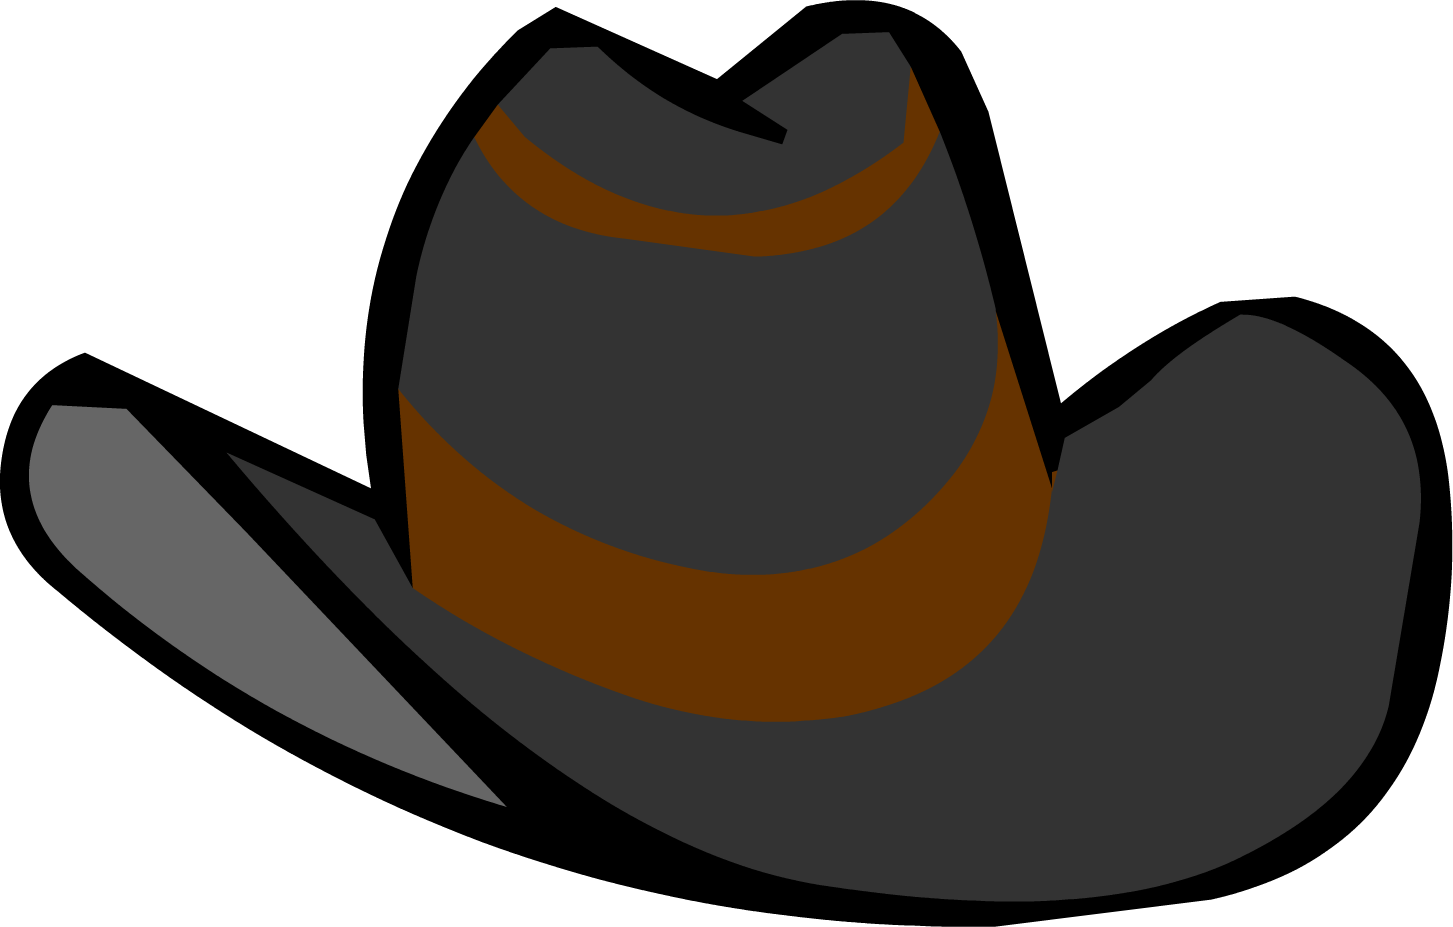 Fashion clipart cap. Free cowboy hat png